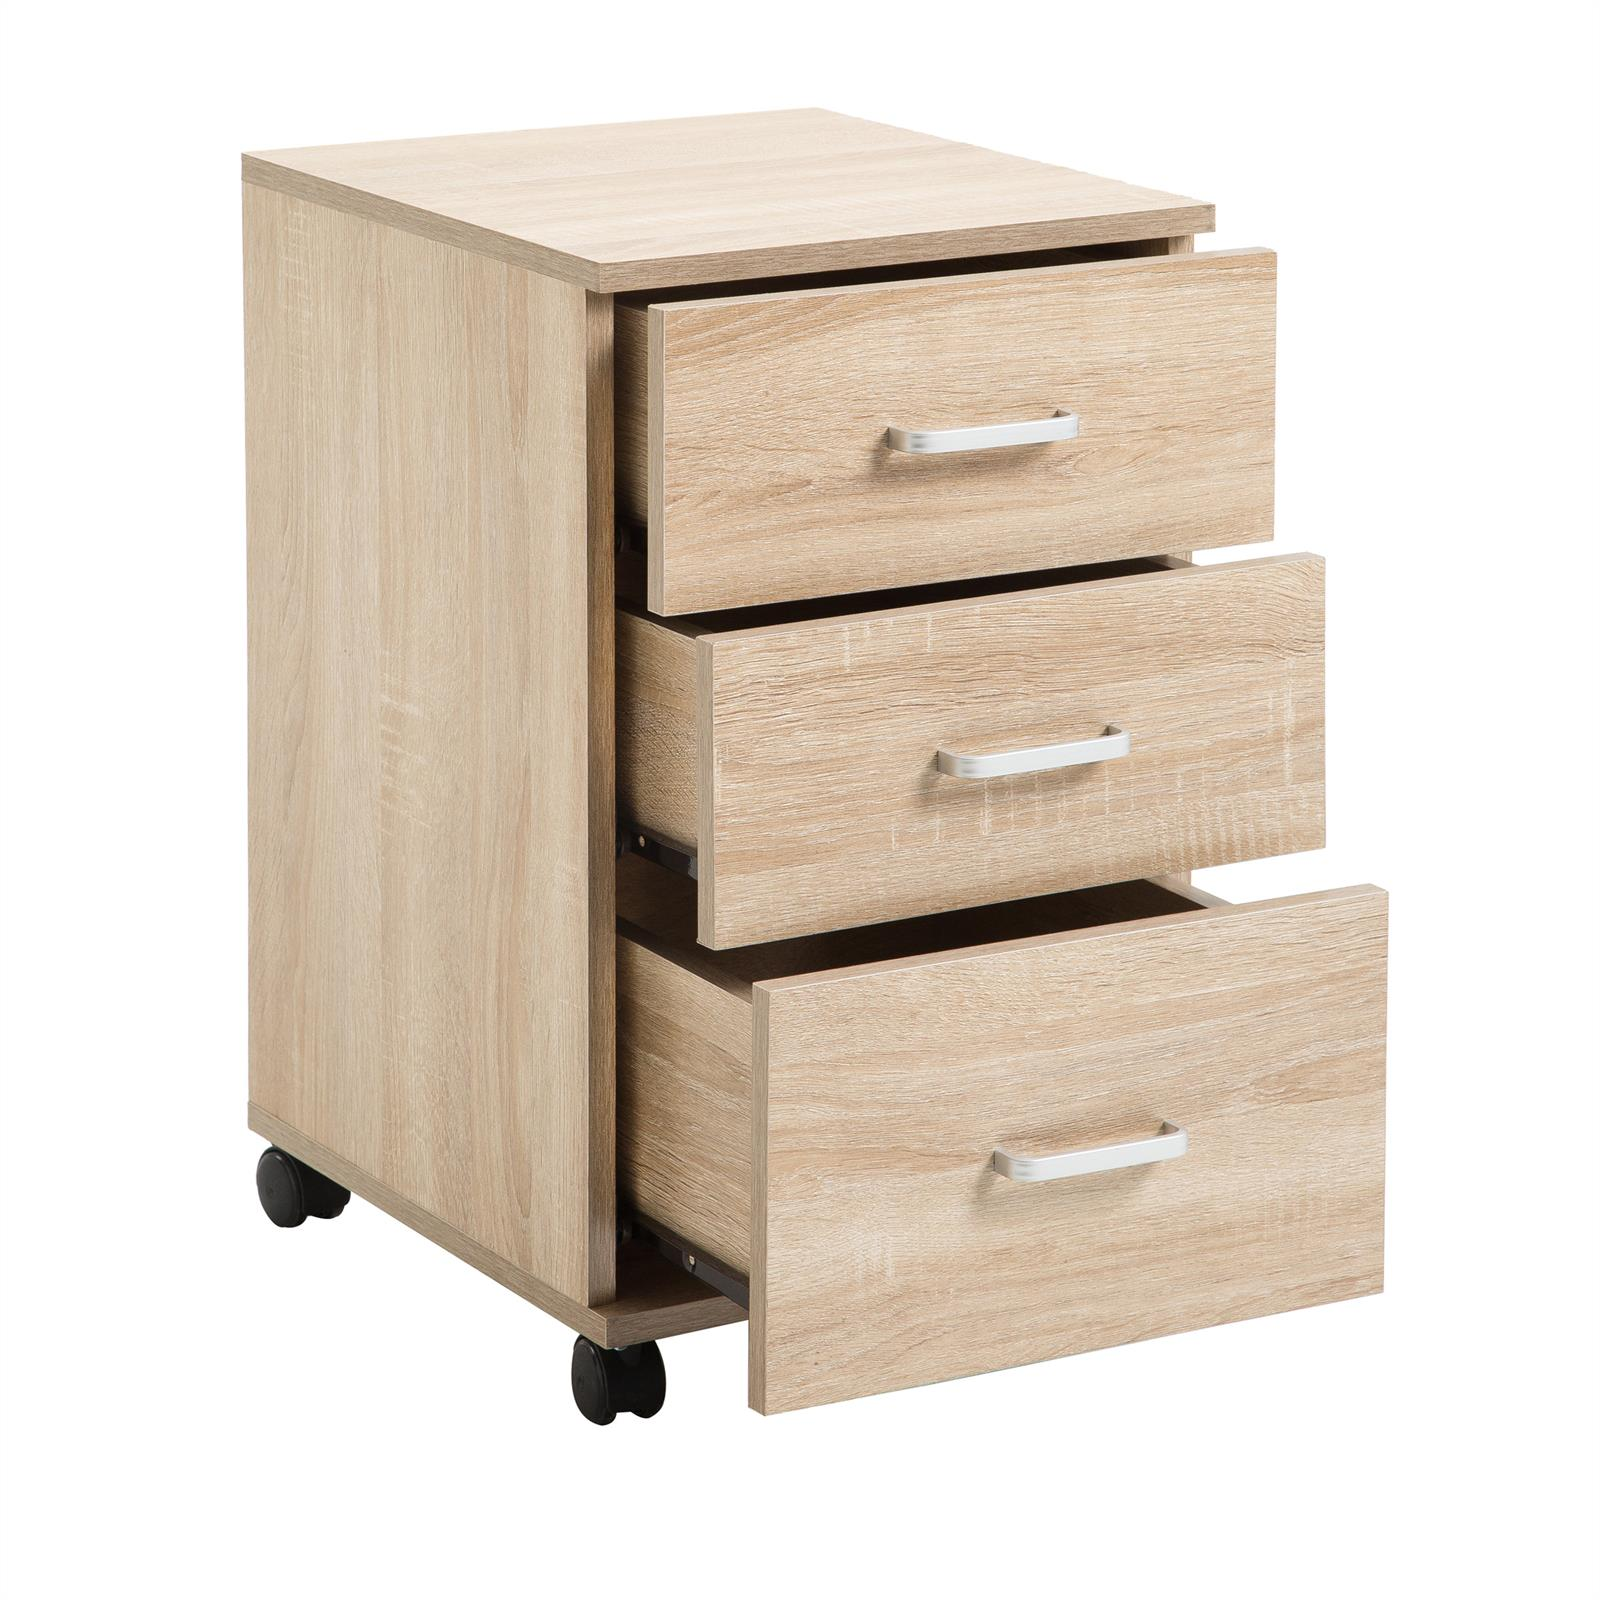 rollcontainer jupiter 3 schubladen in sonoma eiche caro. Black Bedroom Furniture Sets. Home Design Ideas